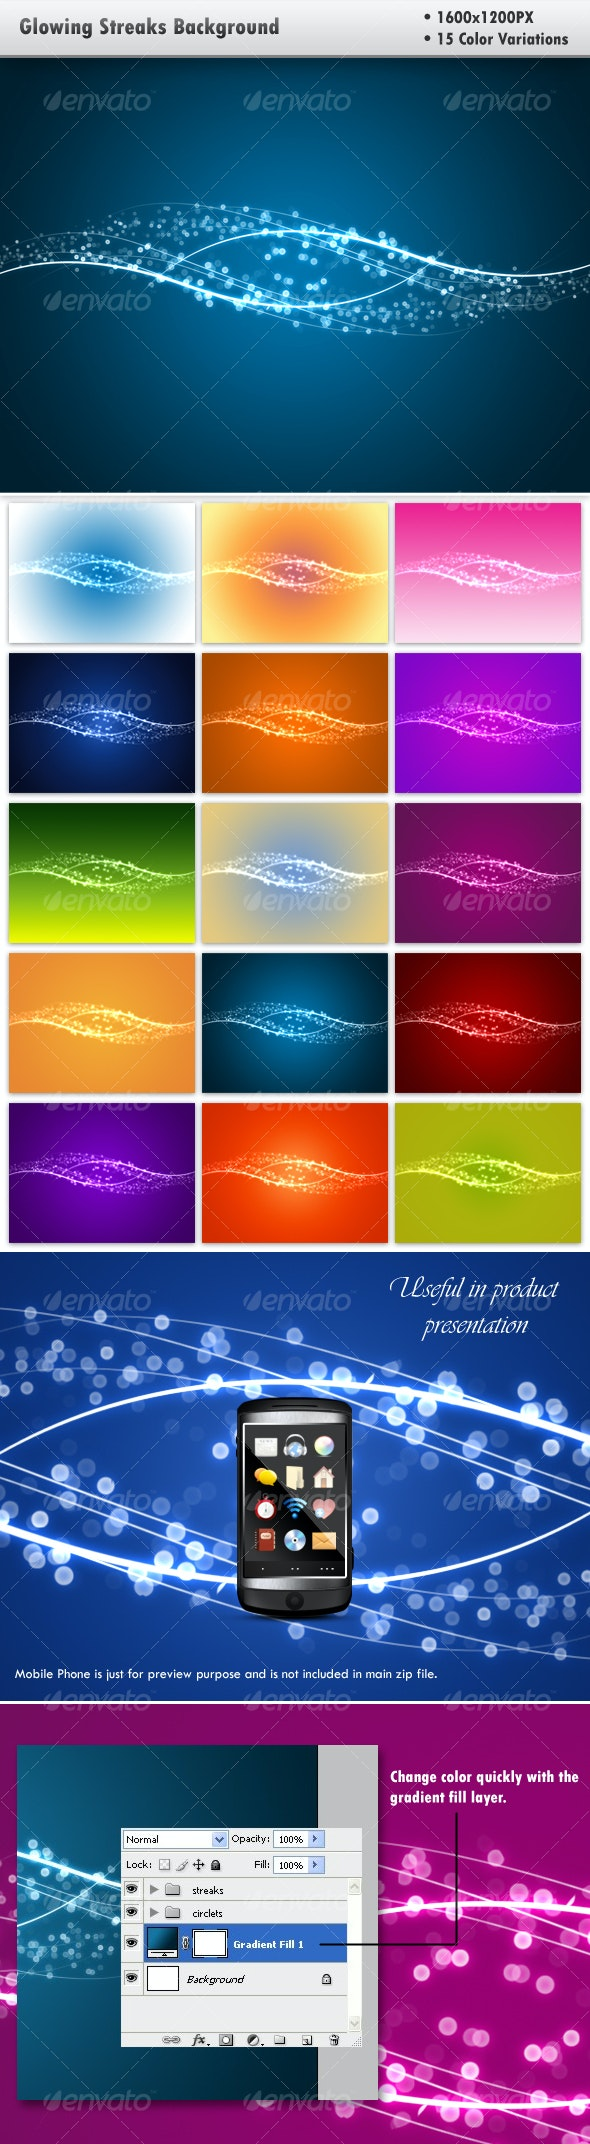 Glowing Streaks Background - Abstract Backgrounds